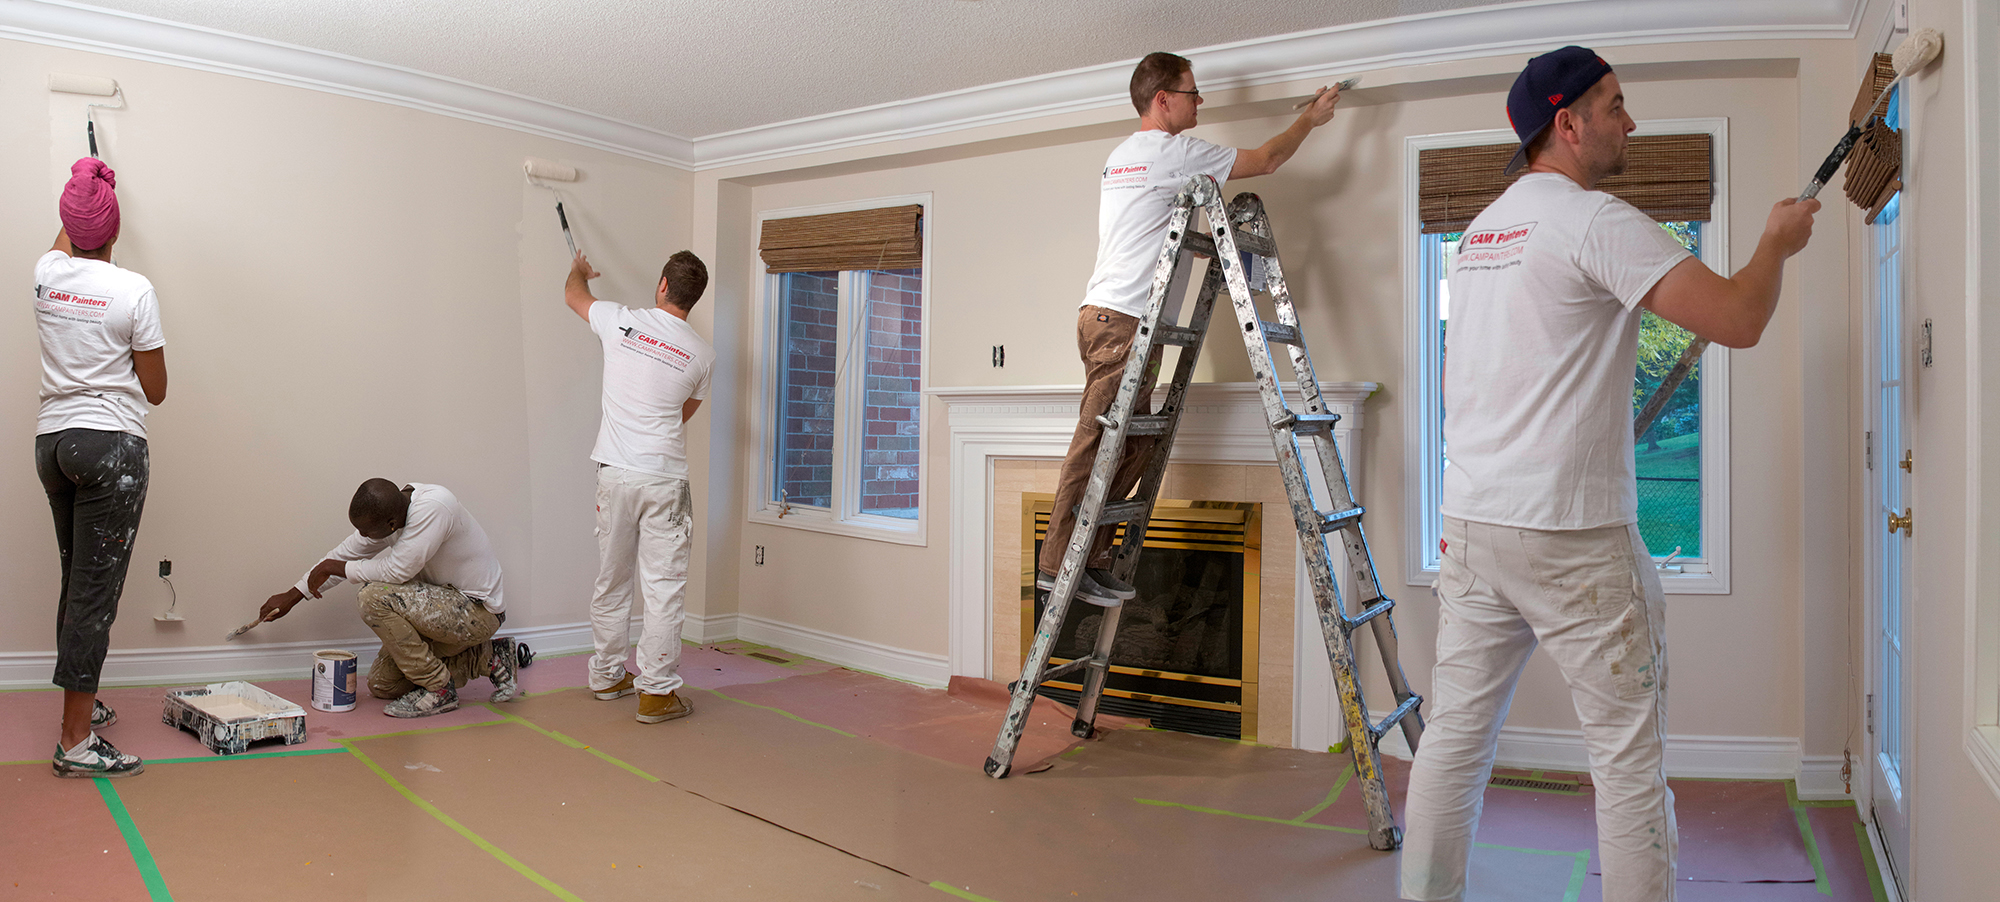 Interior Painting Images: Toronto Home Painting Tips: Interior Painting For Large Homes